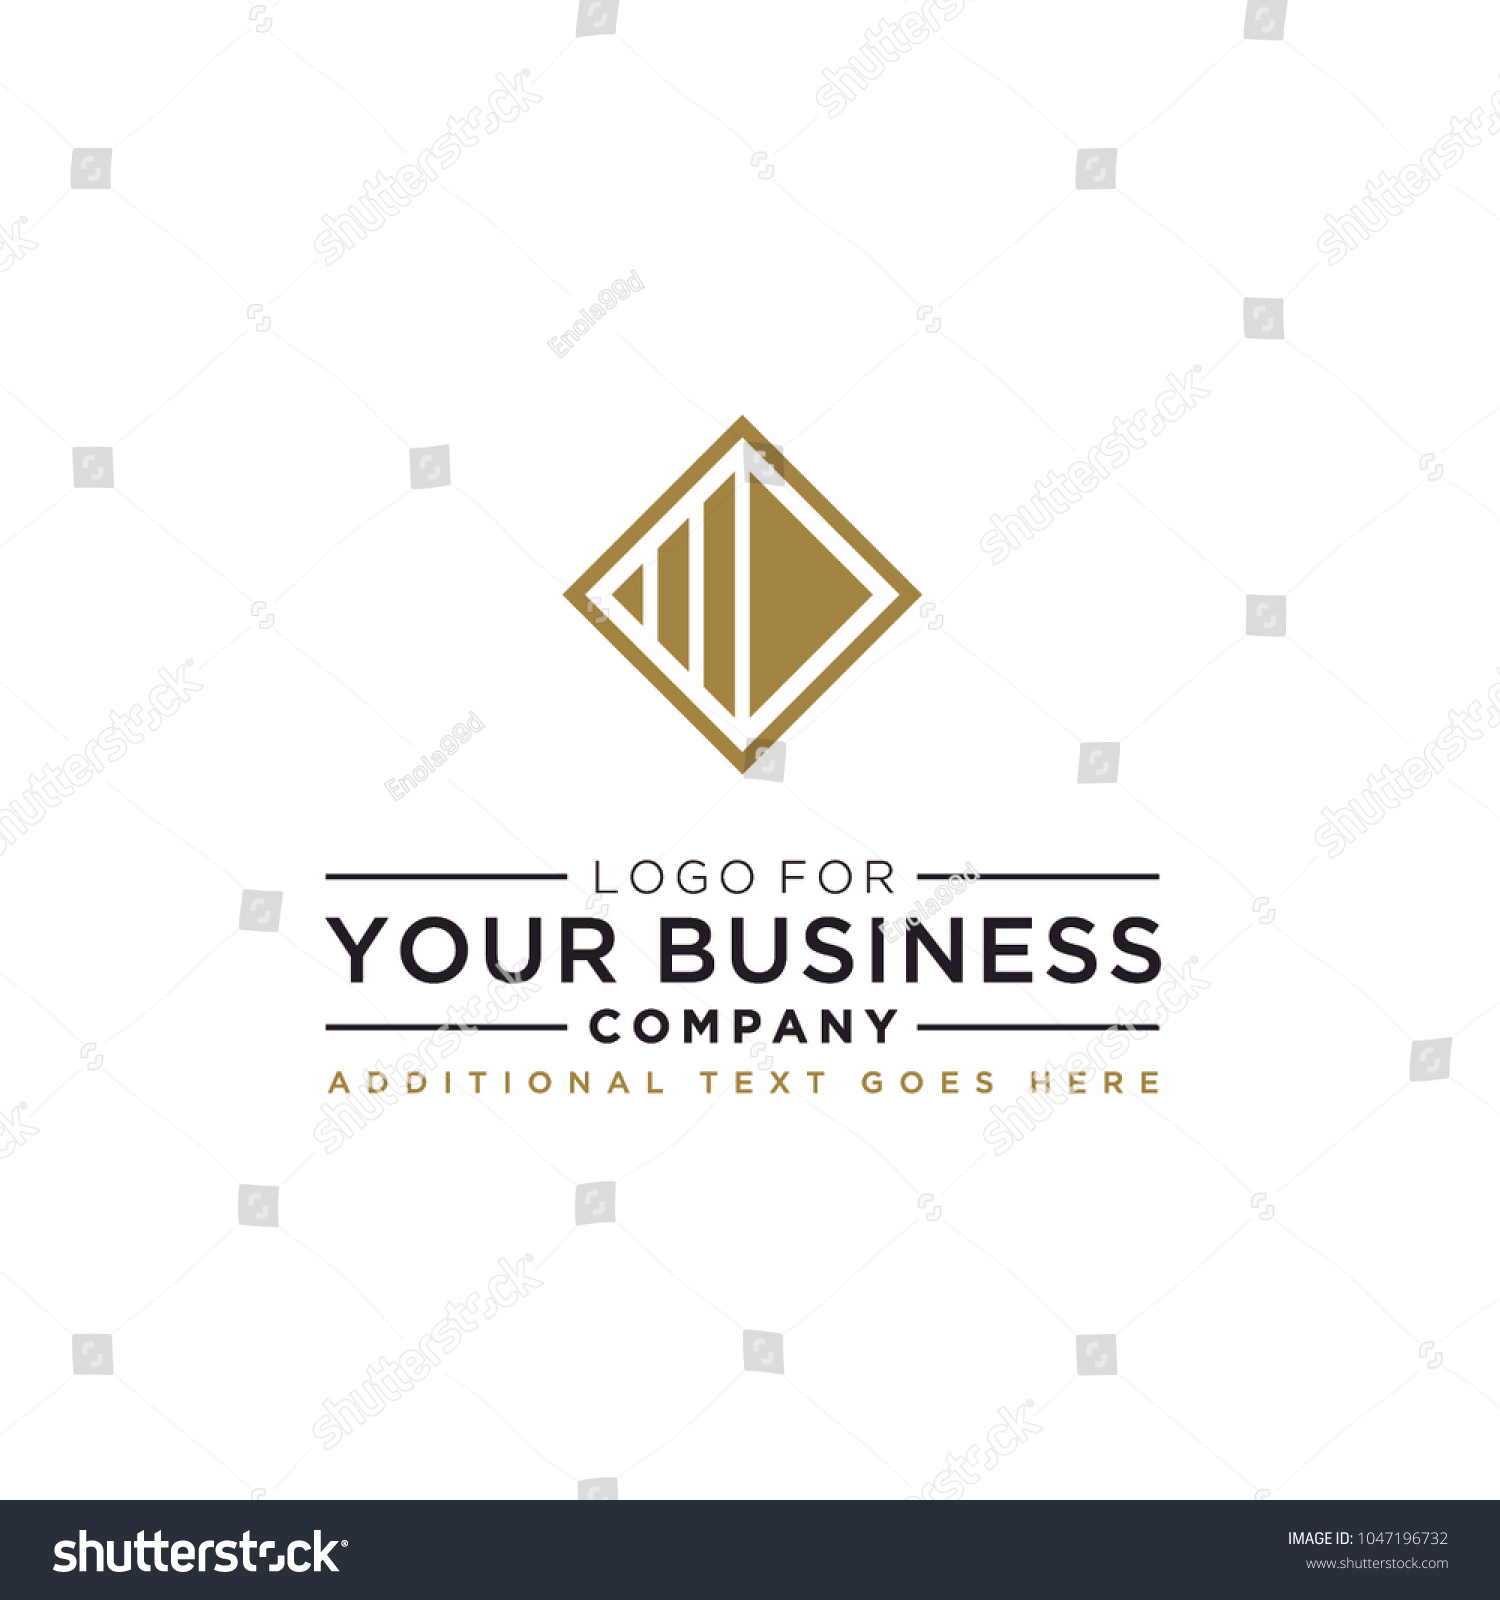 Professional Square Abstract Logo Design Inspiration Stock Vector ... for Square Logo Design Inspiration  557yll